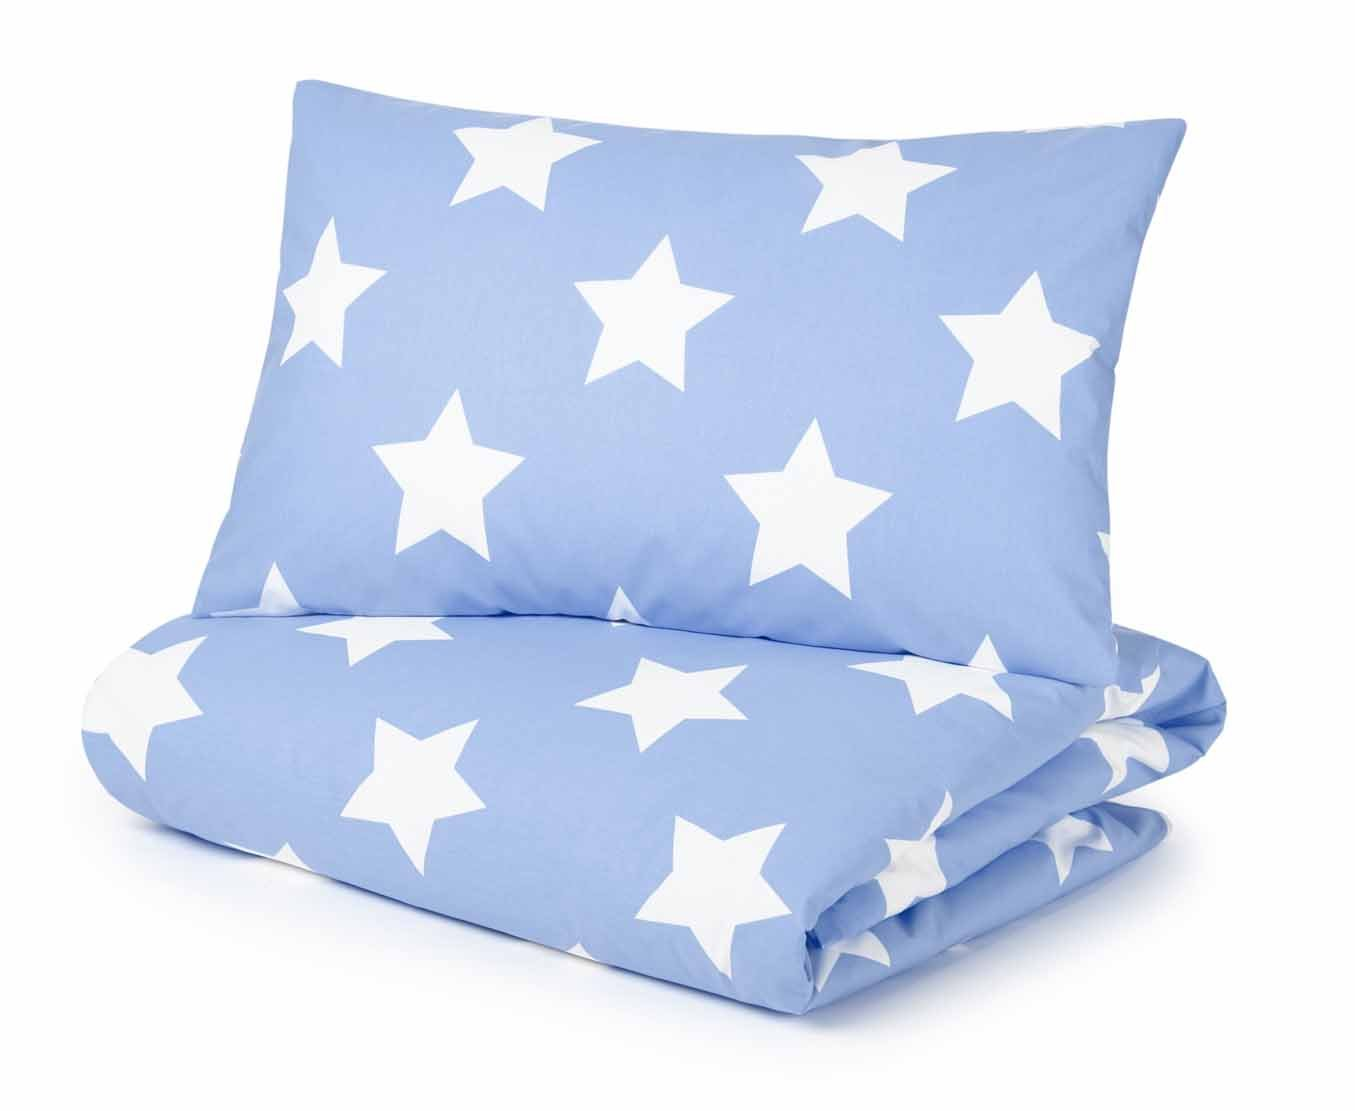 Cot Bed Duvet Cover and Pillowcase Set, Blue with White Stars Pixie and Jack